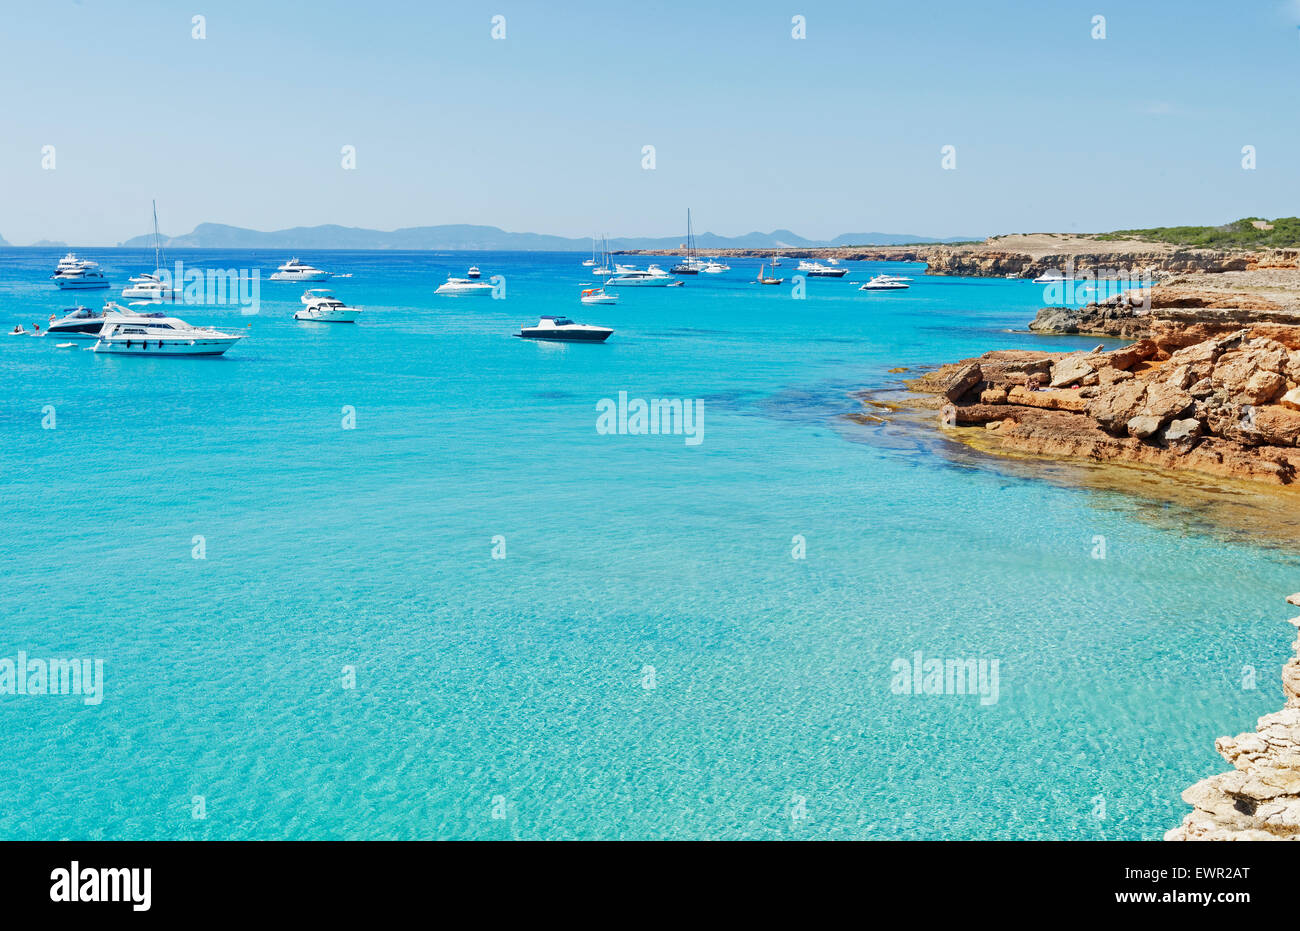 Formentera turquoise waters, Formentera, Balearic Islands, Spain - Stock Image